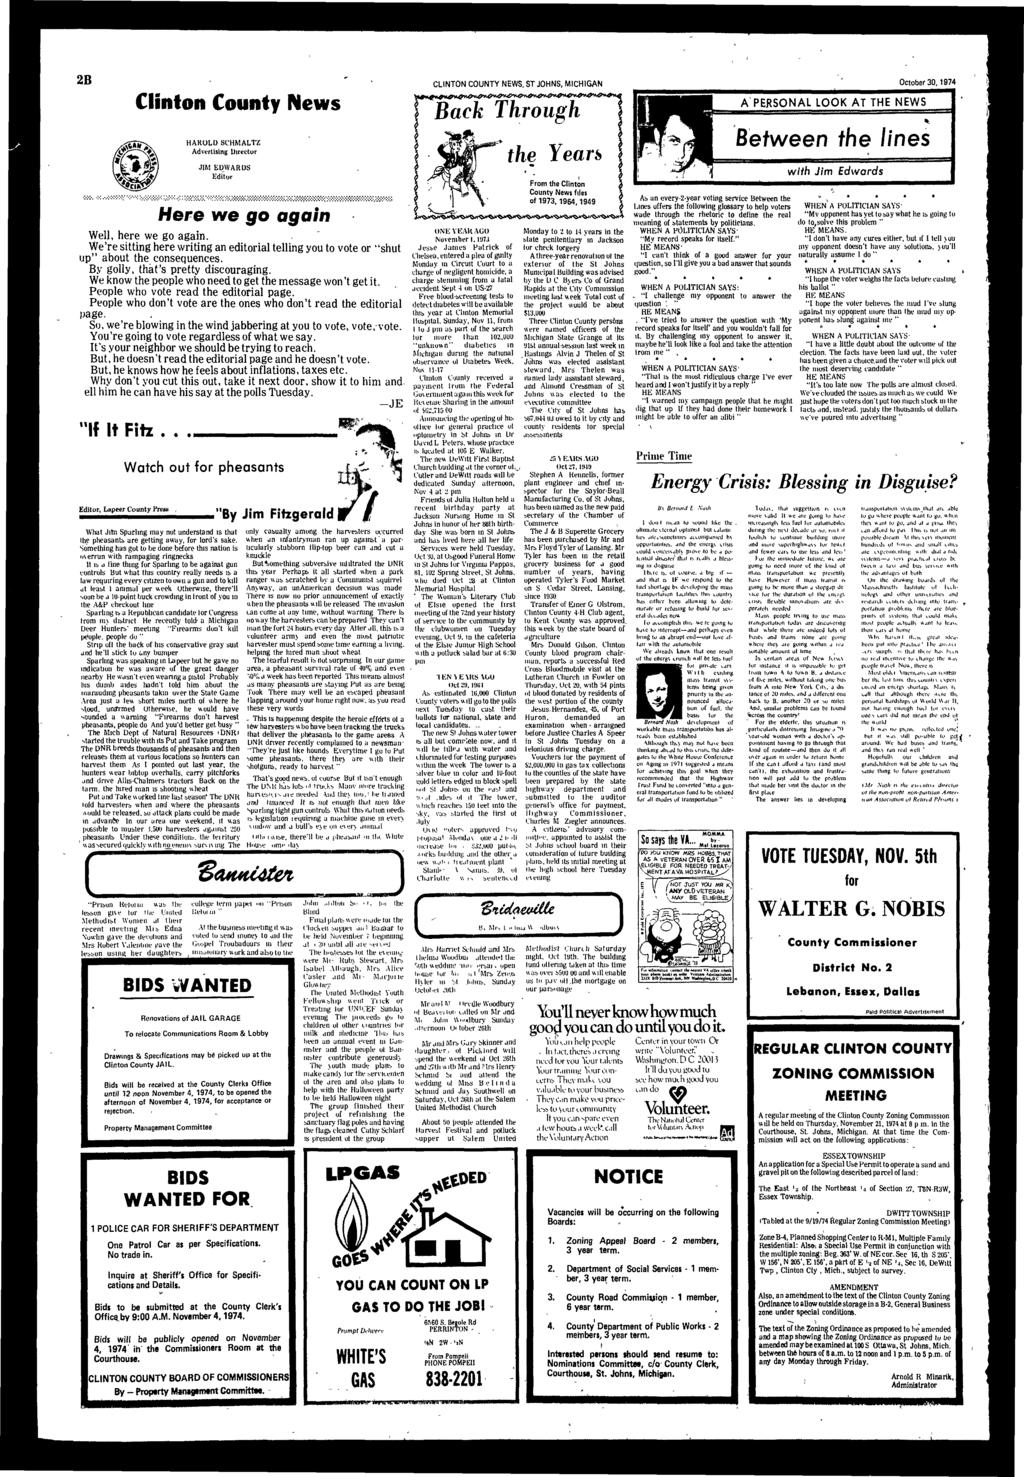 2B Clinton County News HAROL SCHMALTZ Advertising irector JIM EWARS Editor CLINTON COUNTY NEWS, ST JOHNS, MICHIGAN October 30,1974 A PERSONAL LOOK AT THE NEWS ji Between the lines with Jim Edwrds